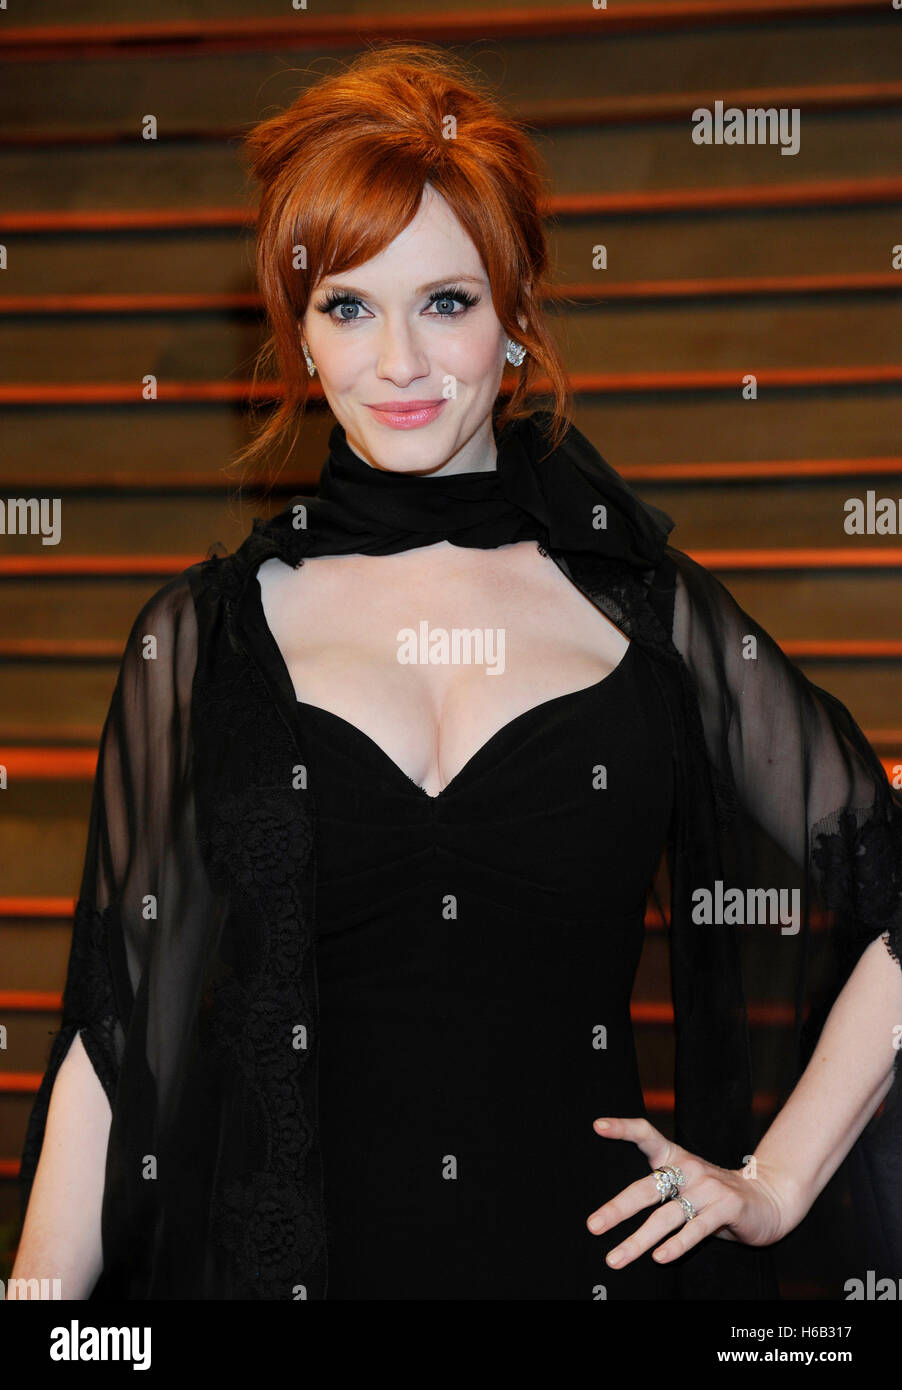 Actress Christina Hendricks attends the 2014 Vanity Fair Oscar Party on March 2, 2014 in West Hollywood, California. - Stock Image